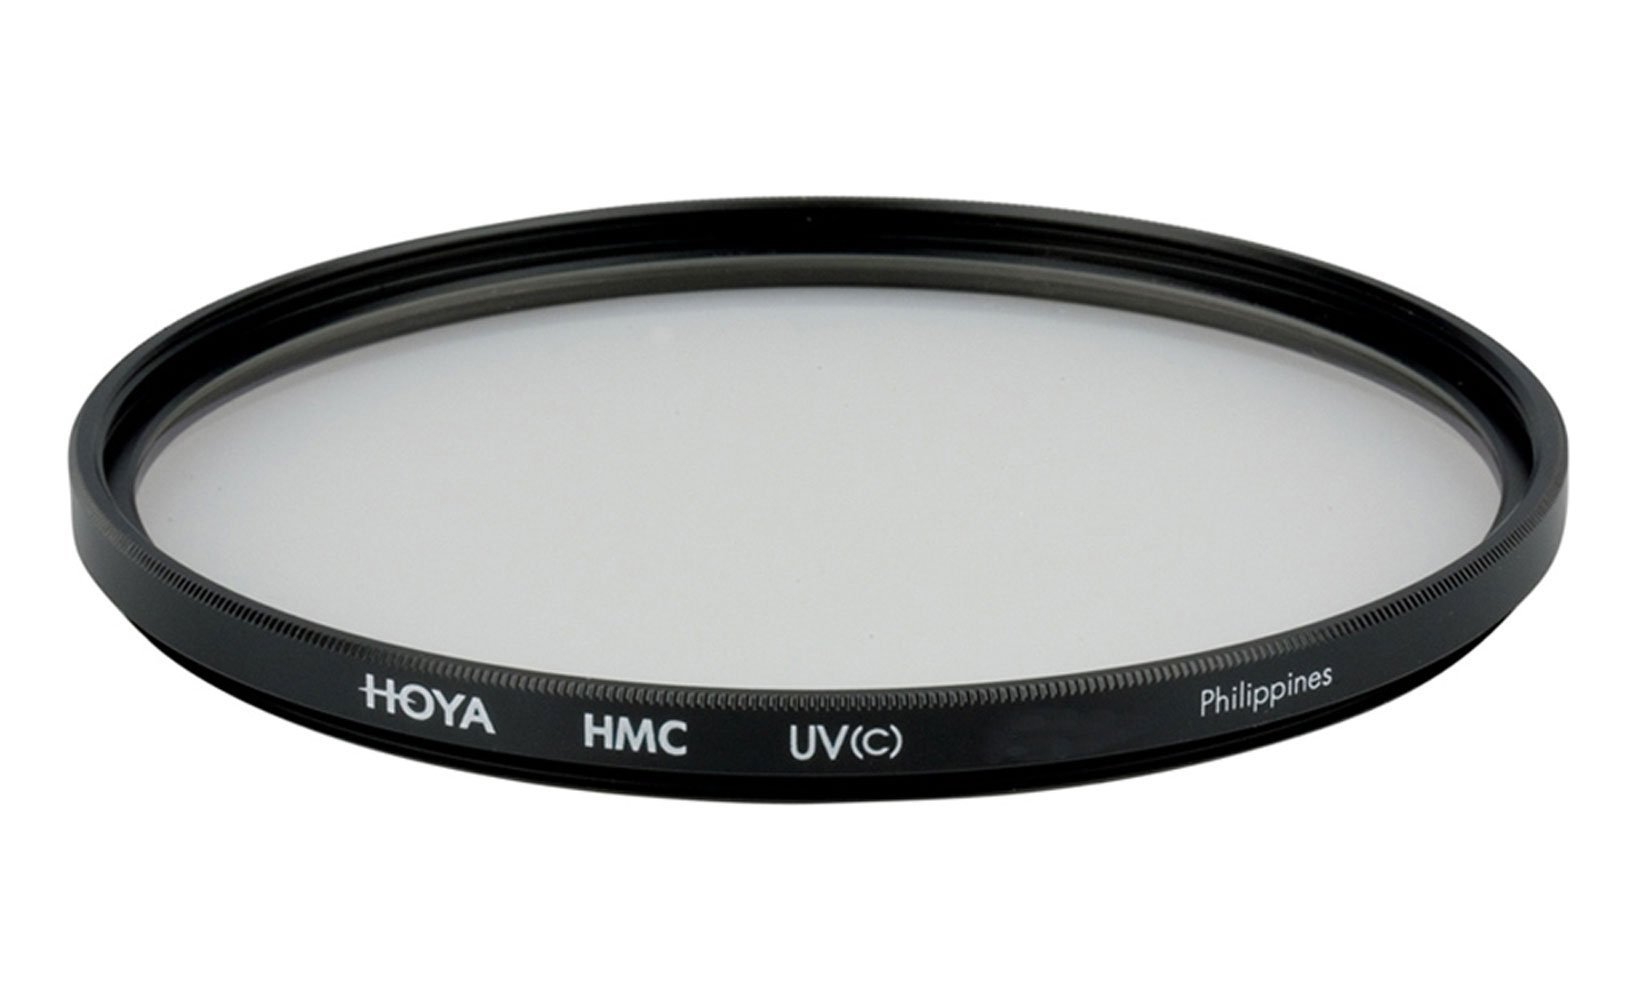 Hoya 77mm HMC UV (C) Digital Slim Frame Multi-Coated Glass Filter by Hoya